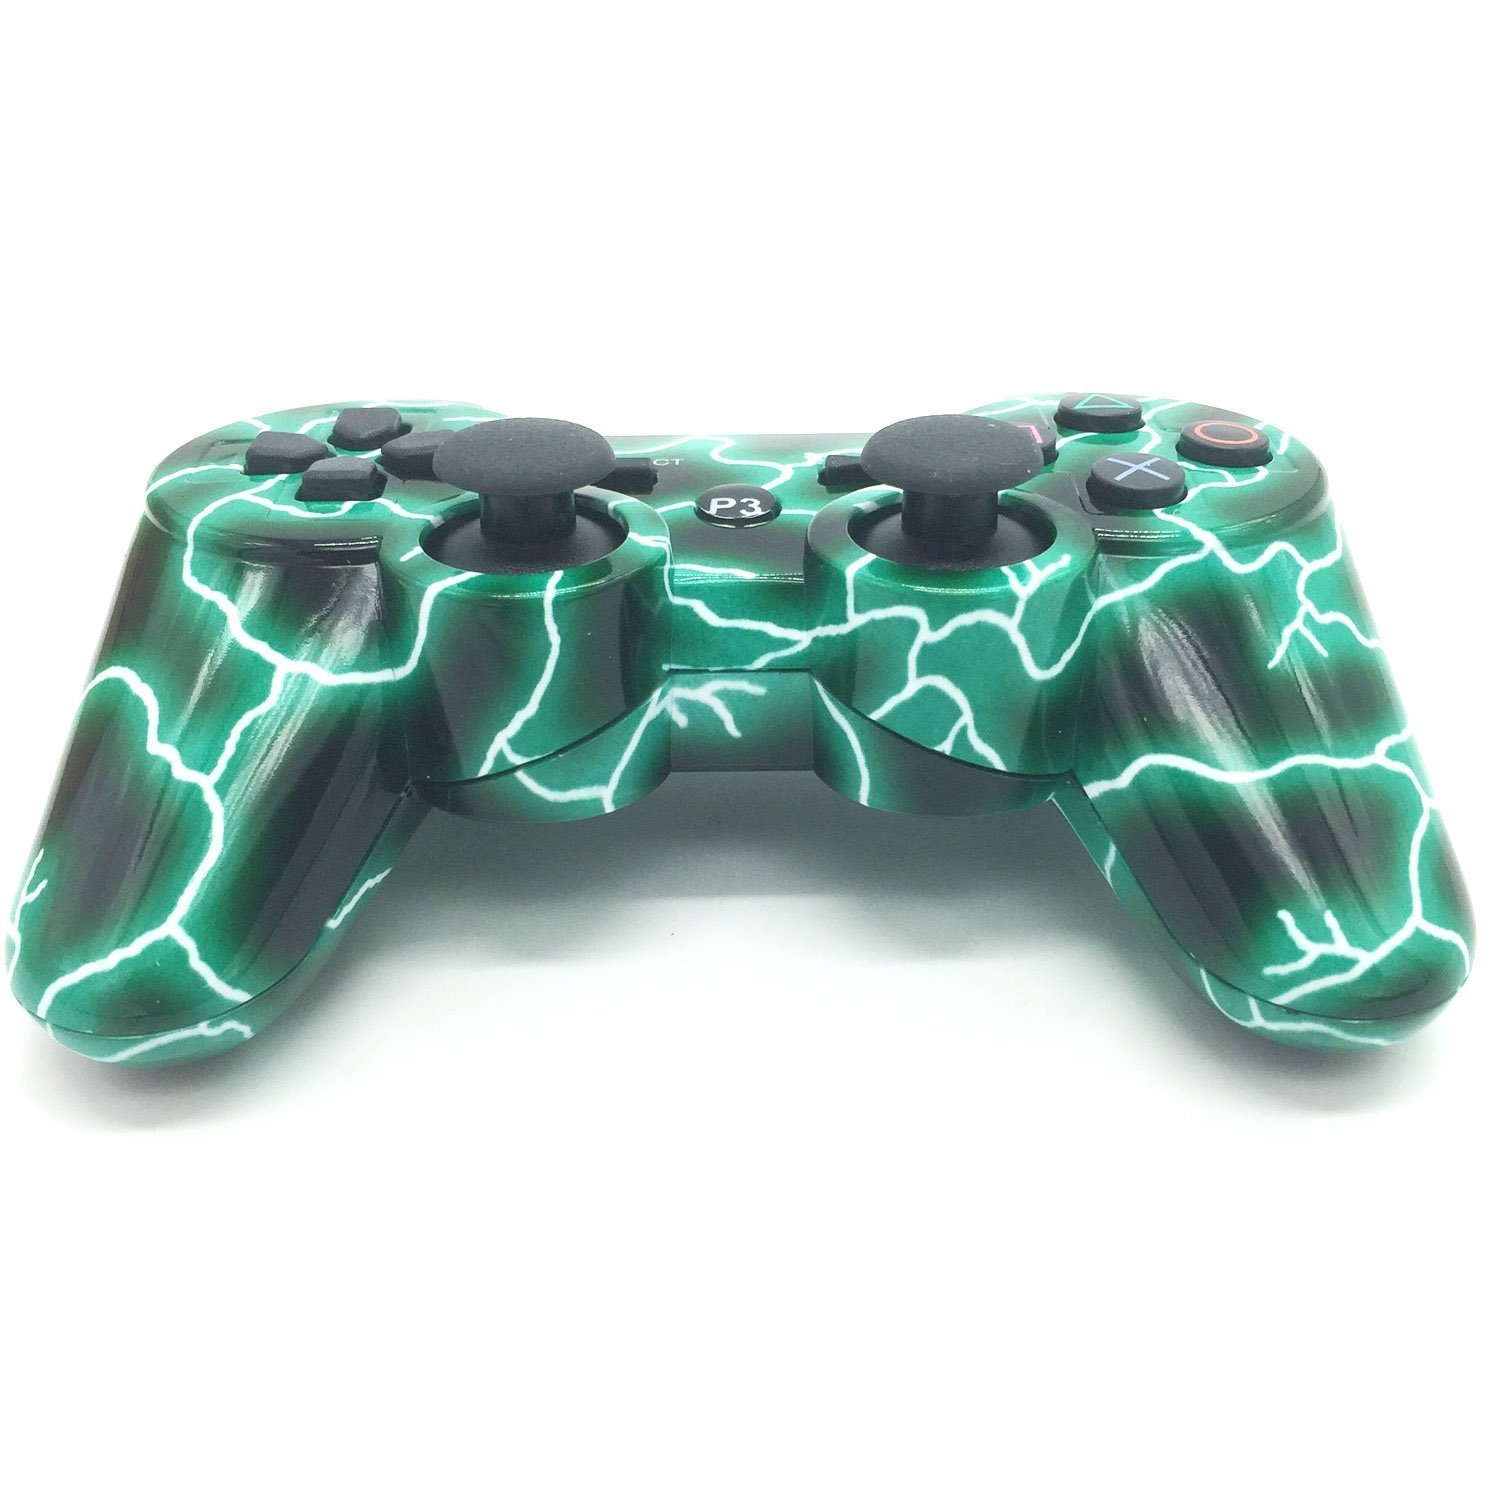 Dualshock 3 Wireless PS3 Controller for Sony PS3 - Lightning Green